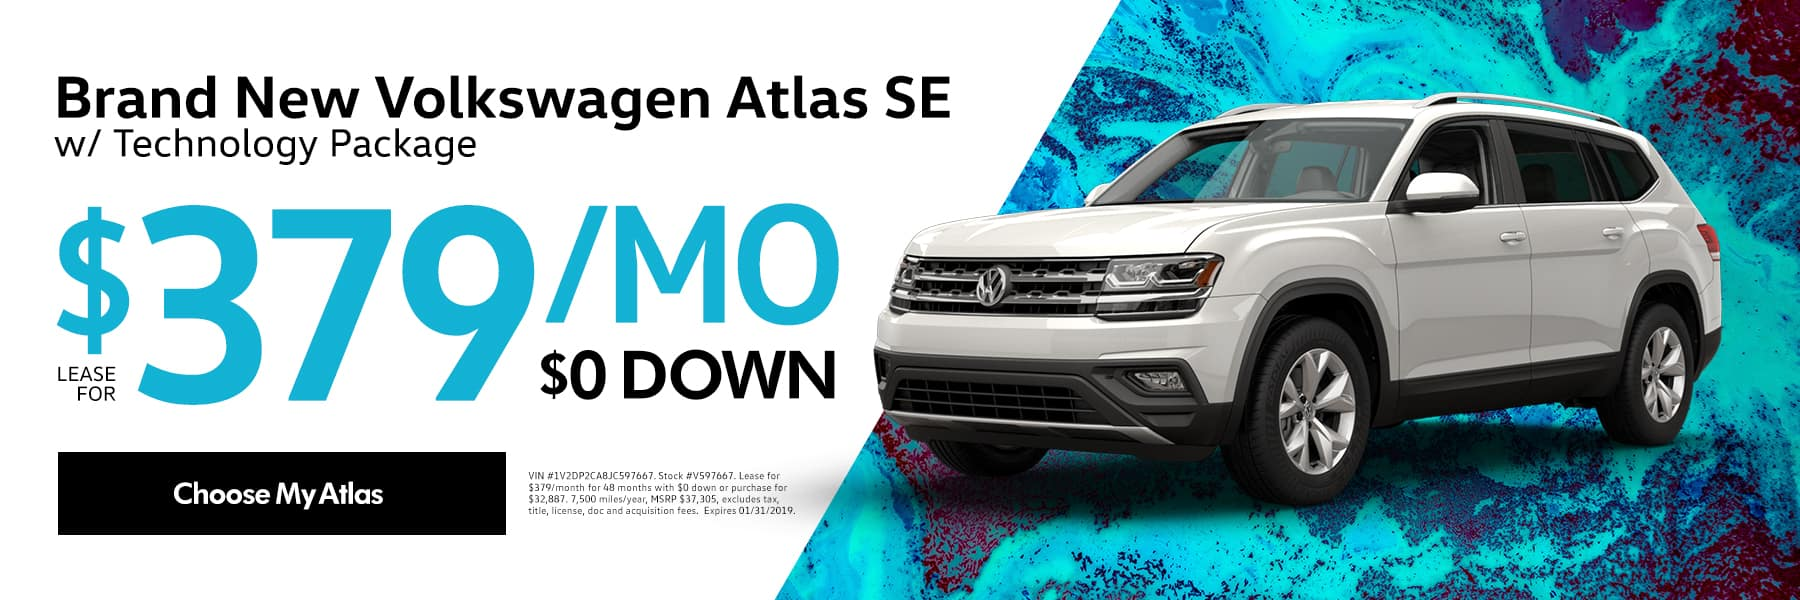 Brand New Volkswagen Atlas SE w/ Technology Package - Lease for $379/month with $0 down - Choose My Atlas